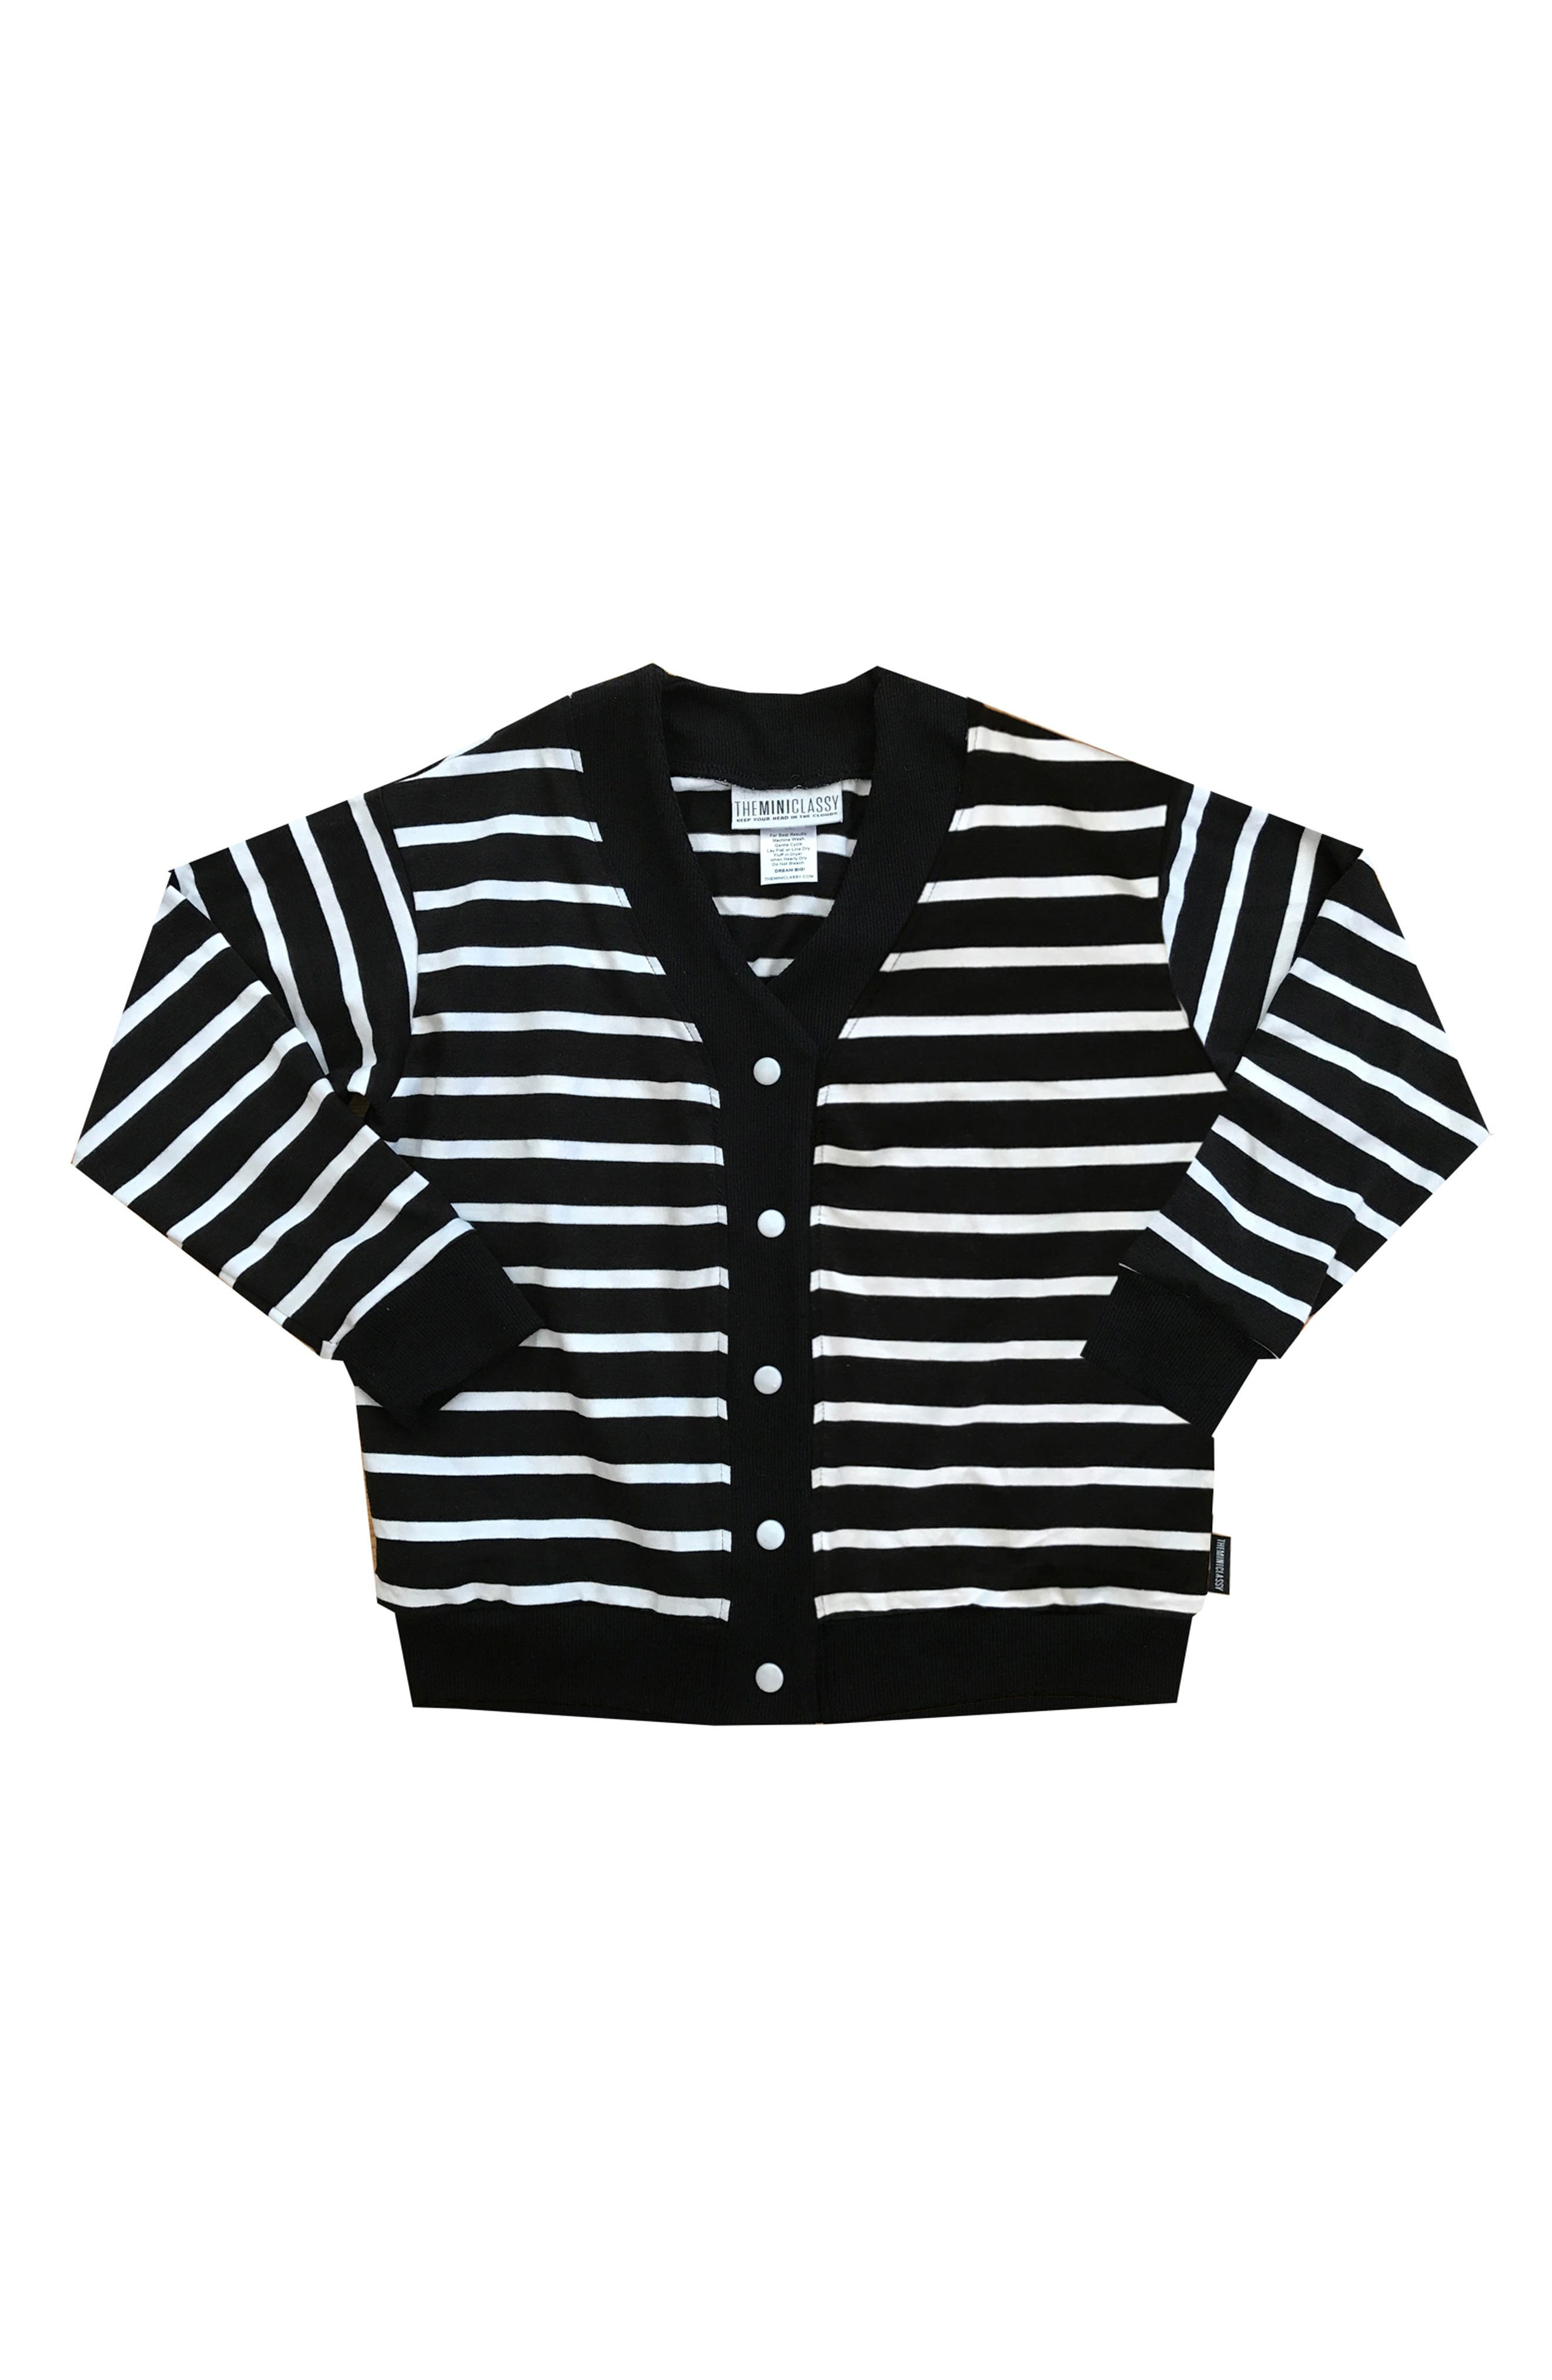 Alternate Image 1 Selected - theMINIclassy Stripe Cardigan Sweater (Toddler Boys & Little Boys)